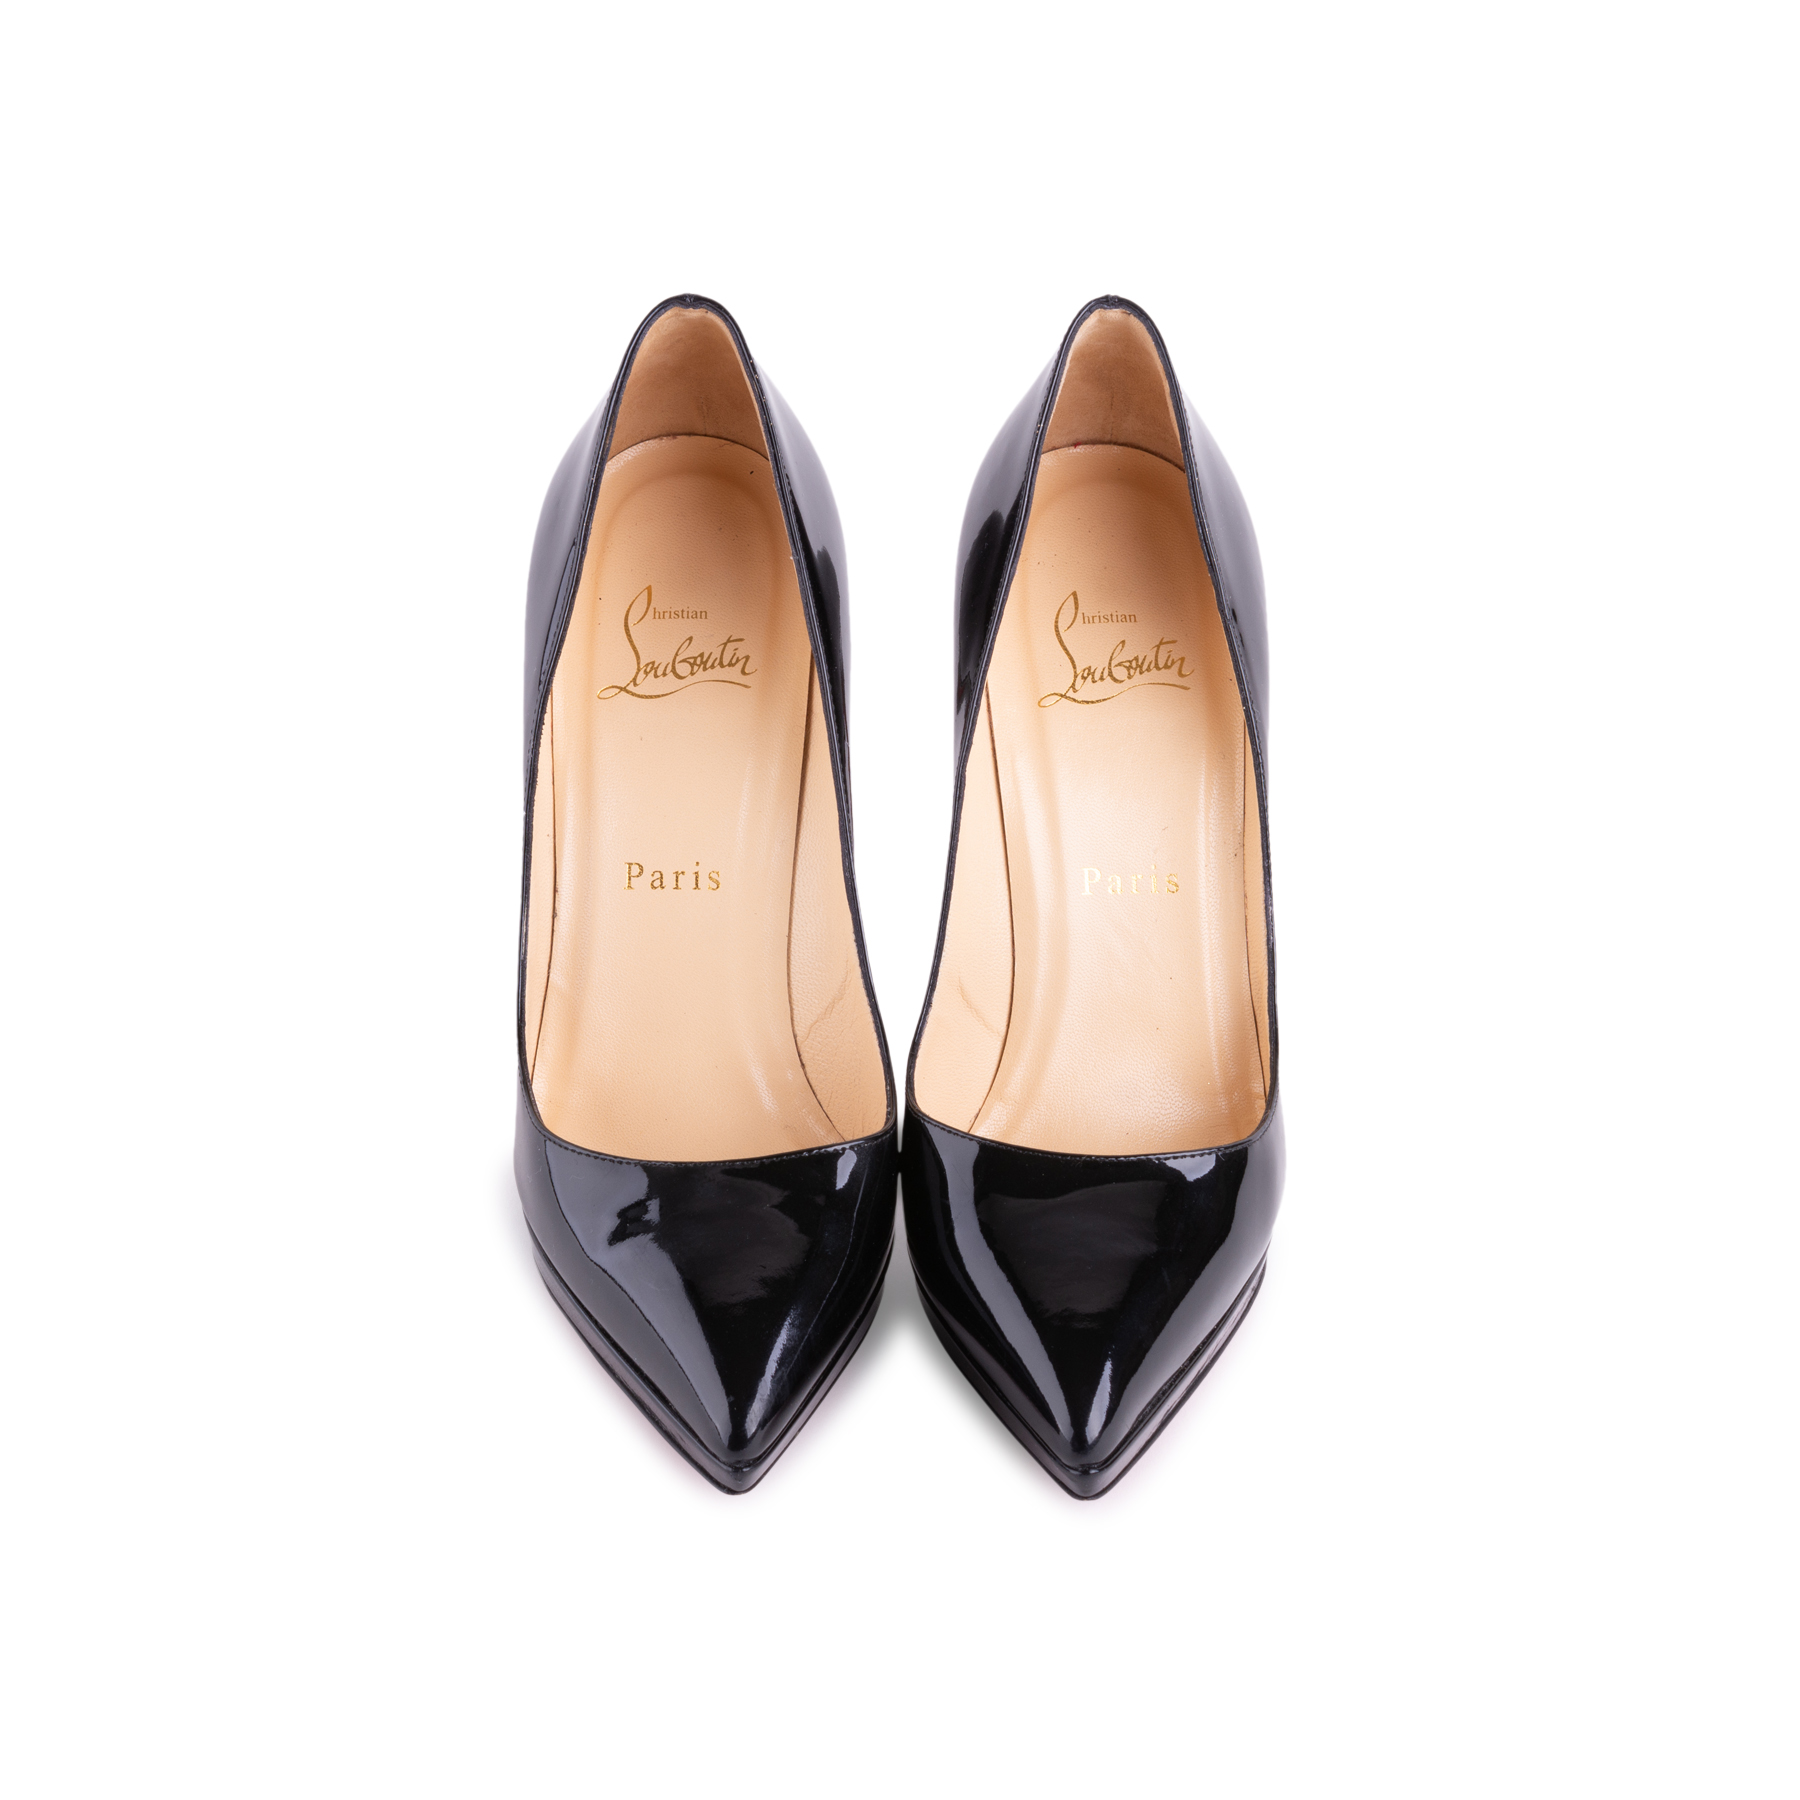 fdaf222a74b0 Authentic Second Hand Christian Louboutin Pigalle Plato Pumps  (PSS-607-00005)